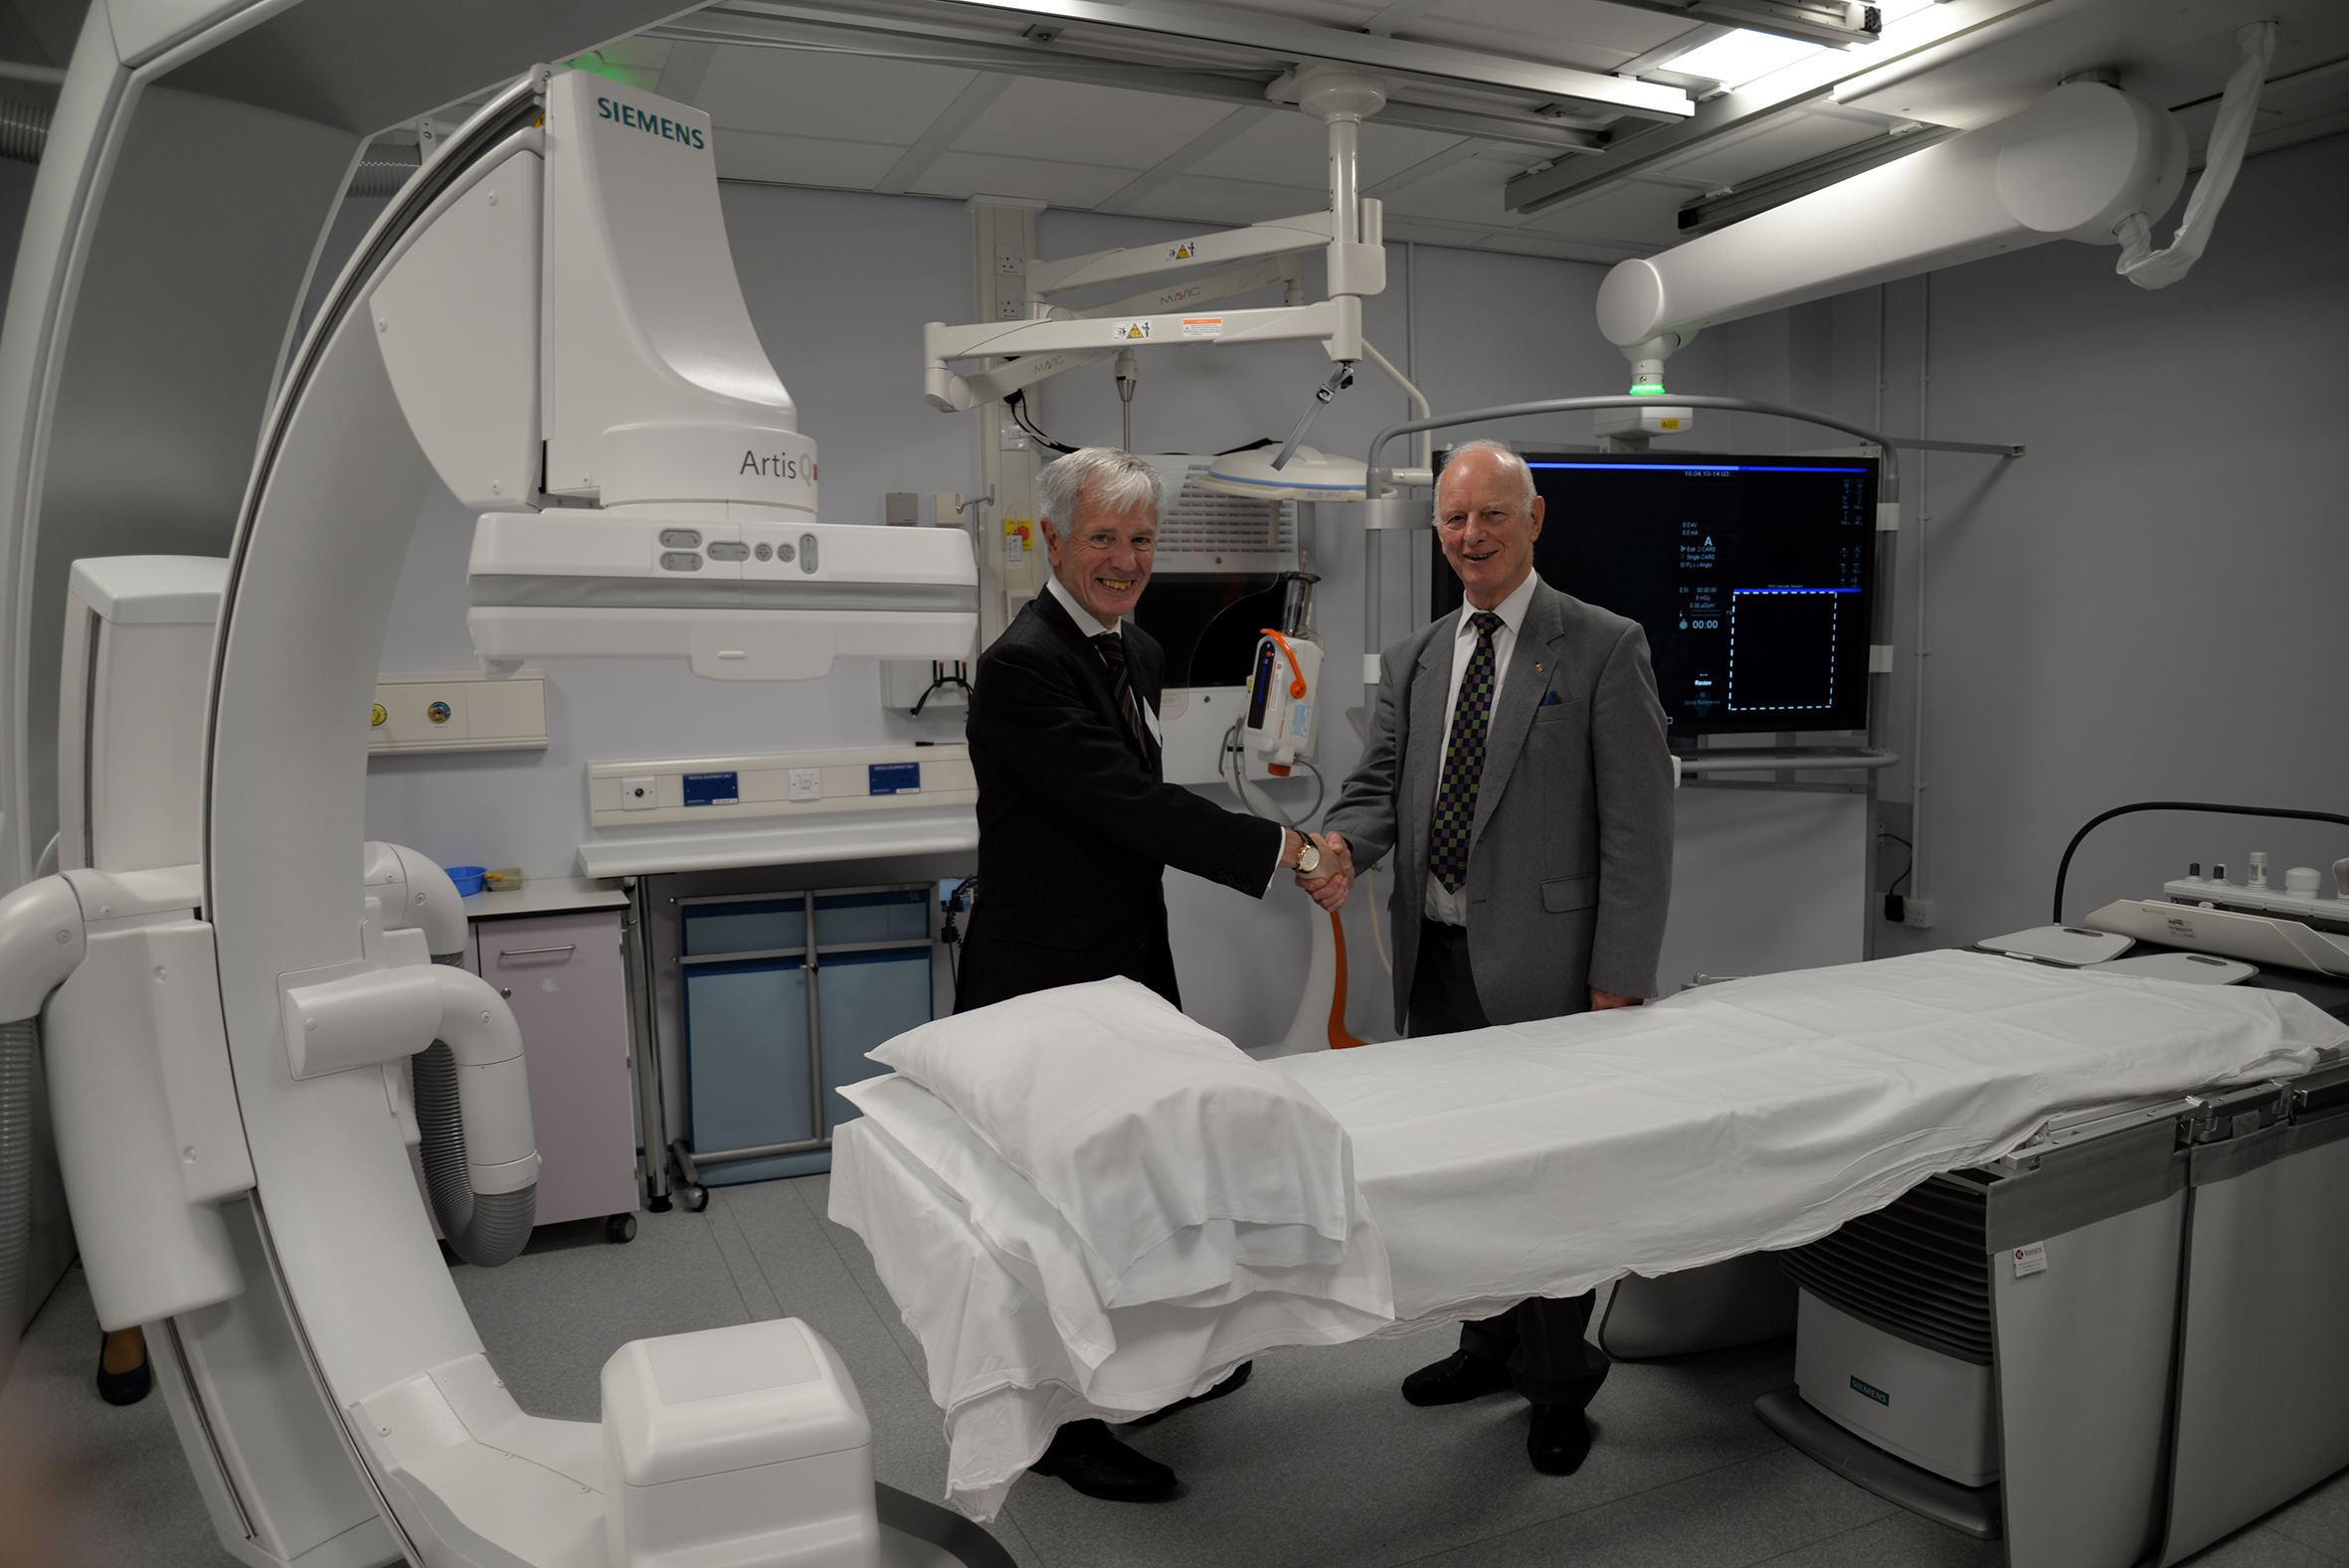 League of Friends funds Interventional X-Ray System